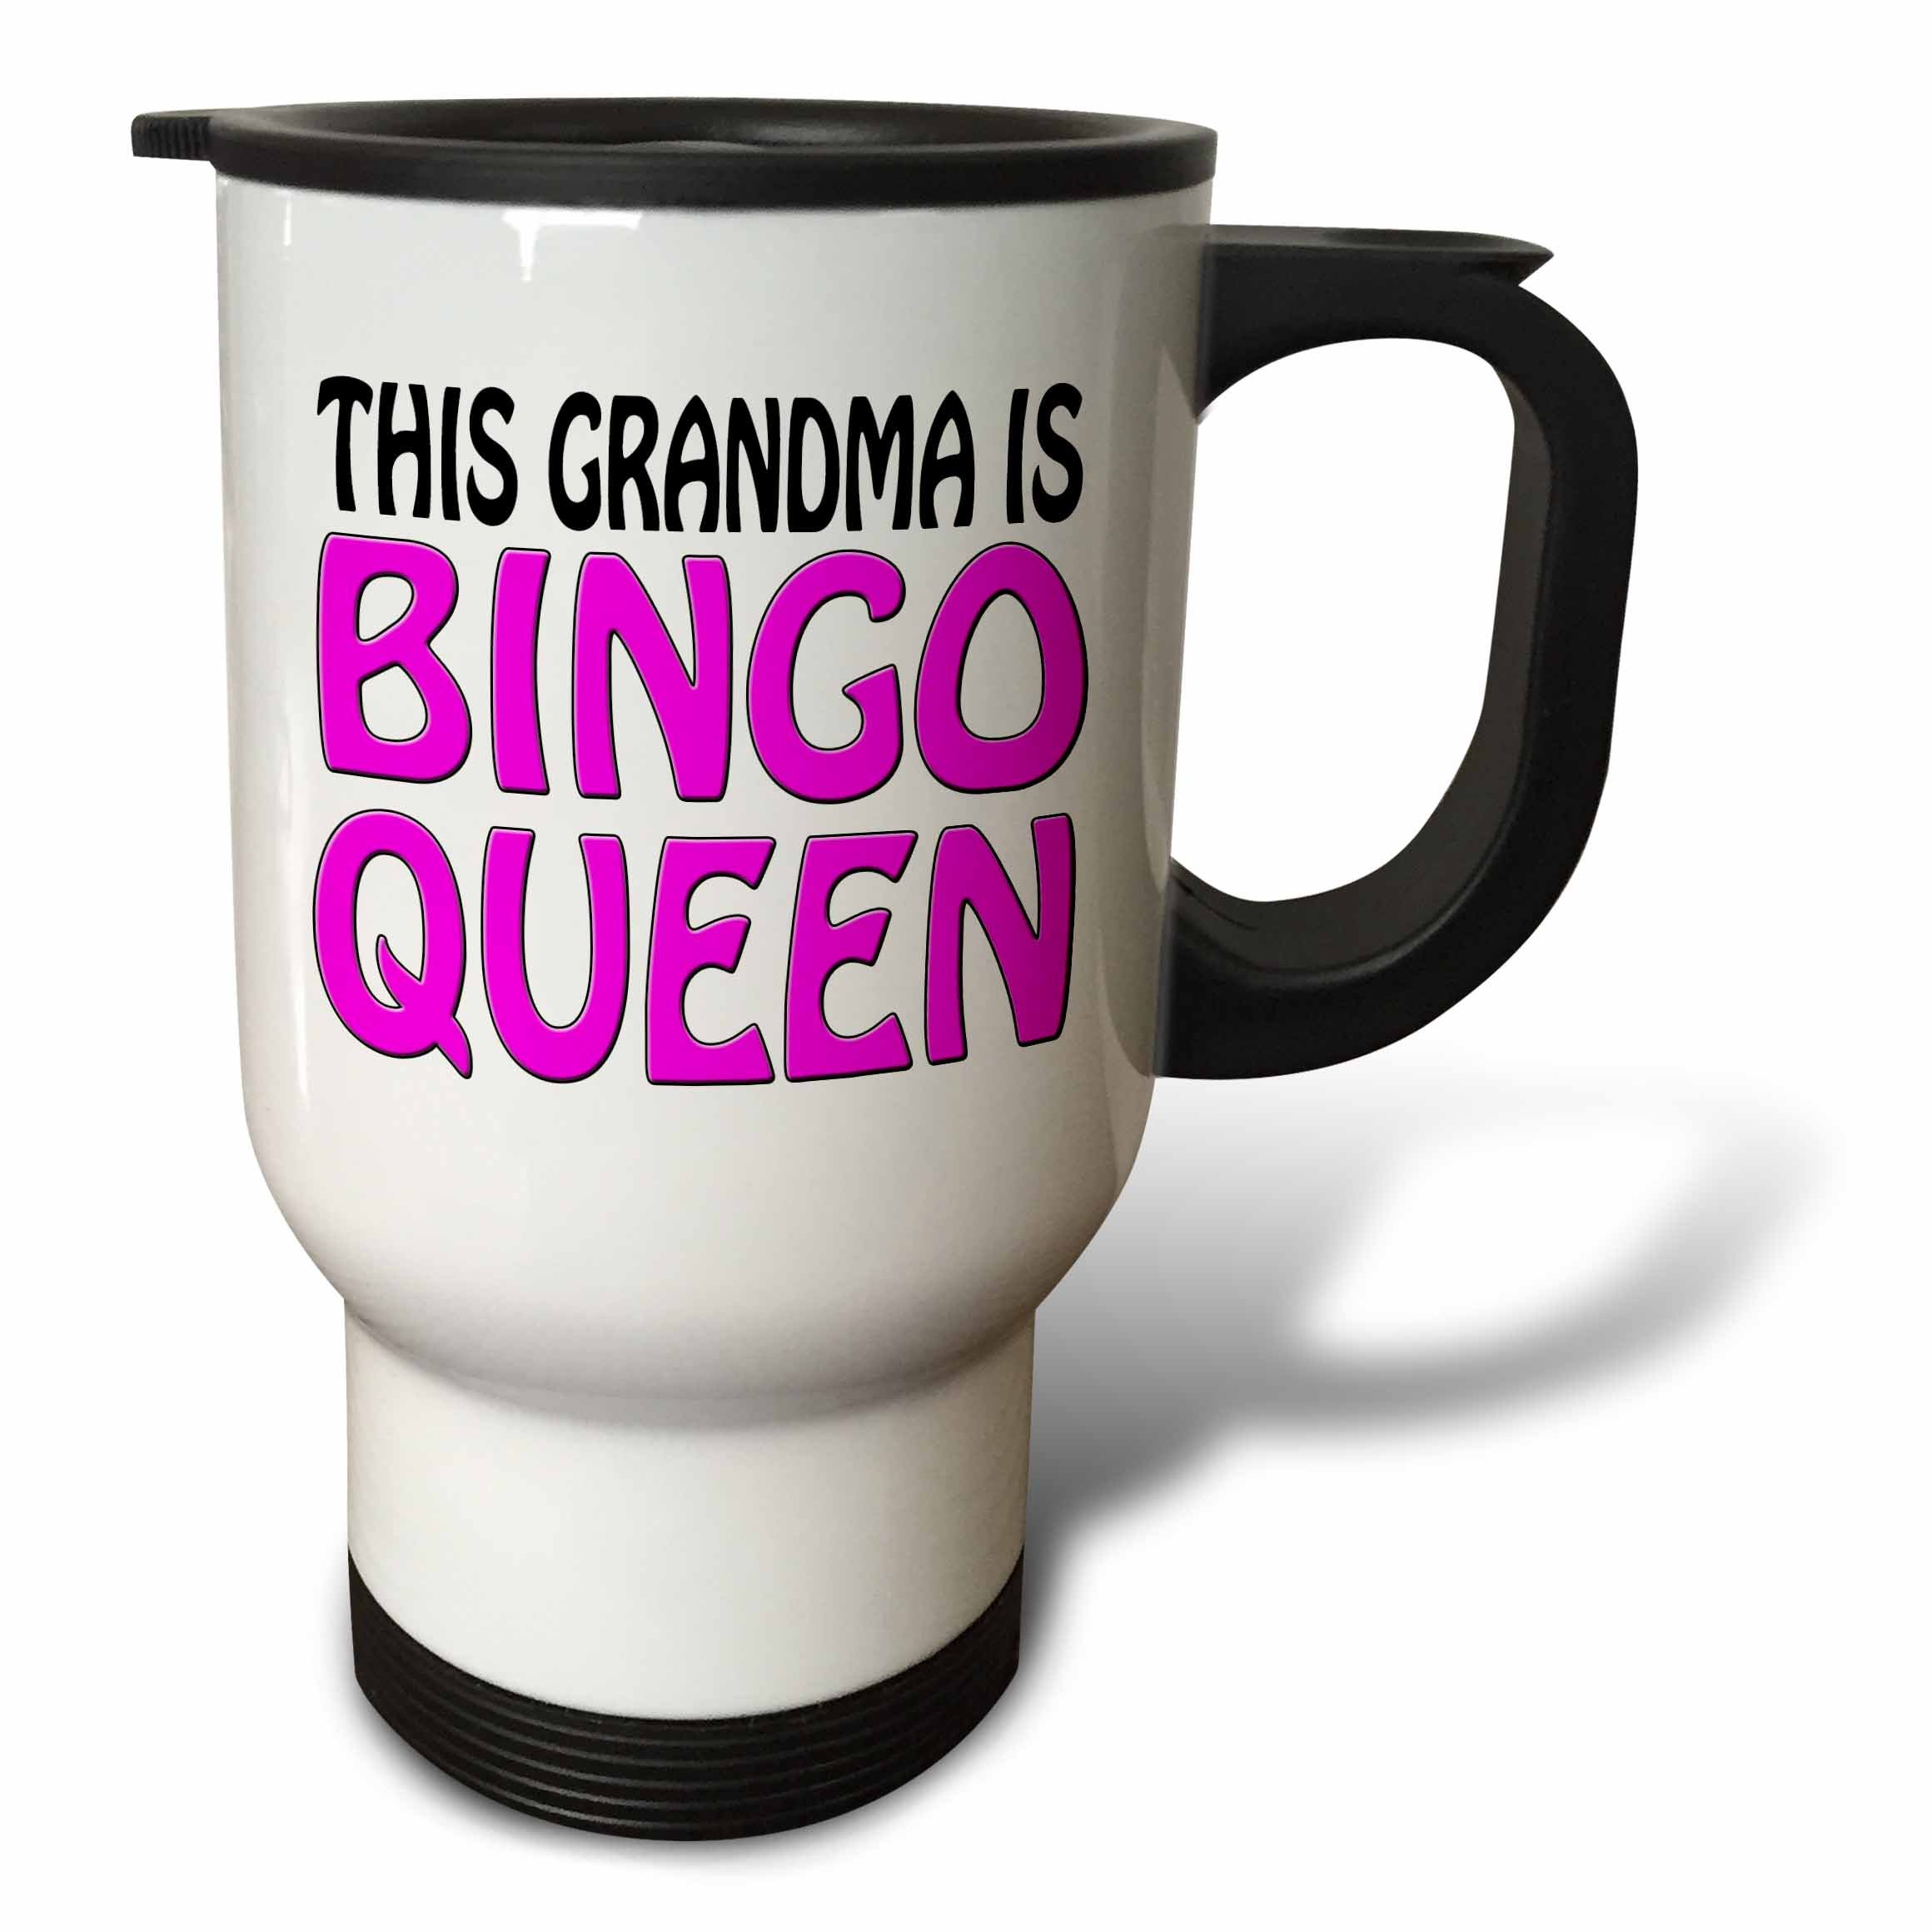 3dRose tm_149770_1 This Grandma Is Bingo Queen, Hot Pink, Travel Mug, 14-Ounce, Stainless Steel by 3dRose